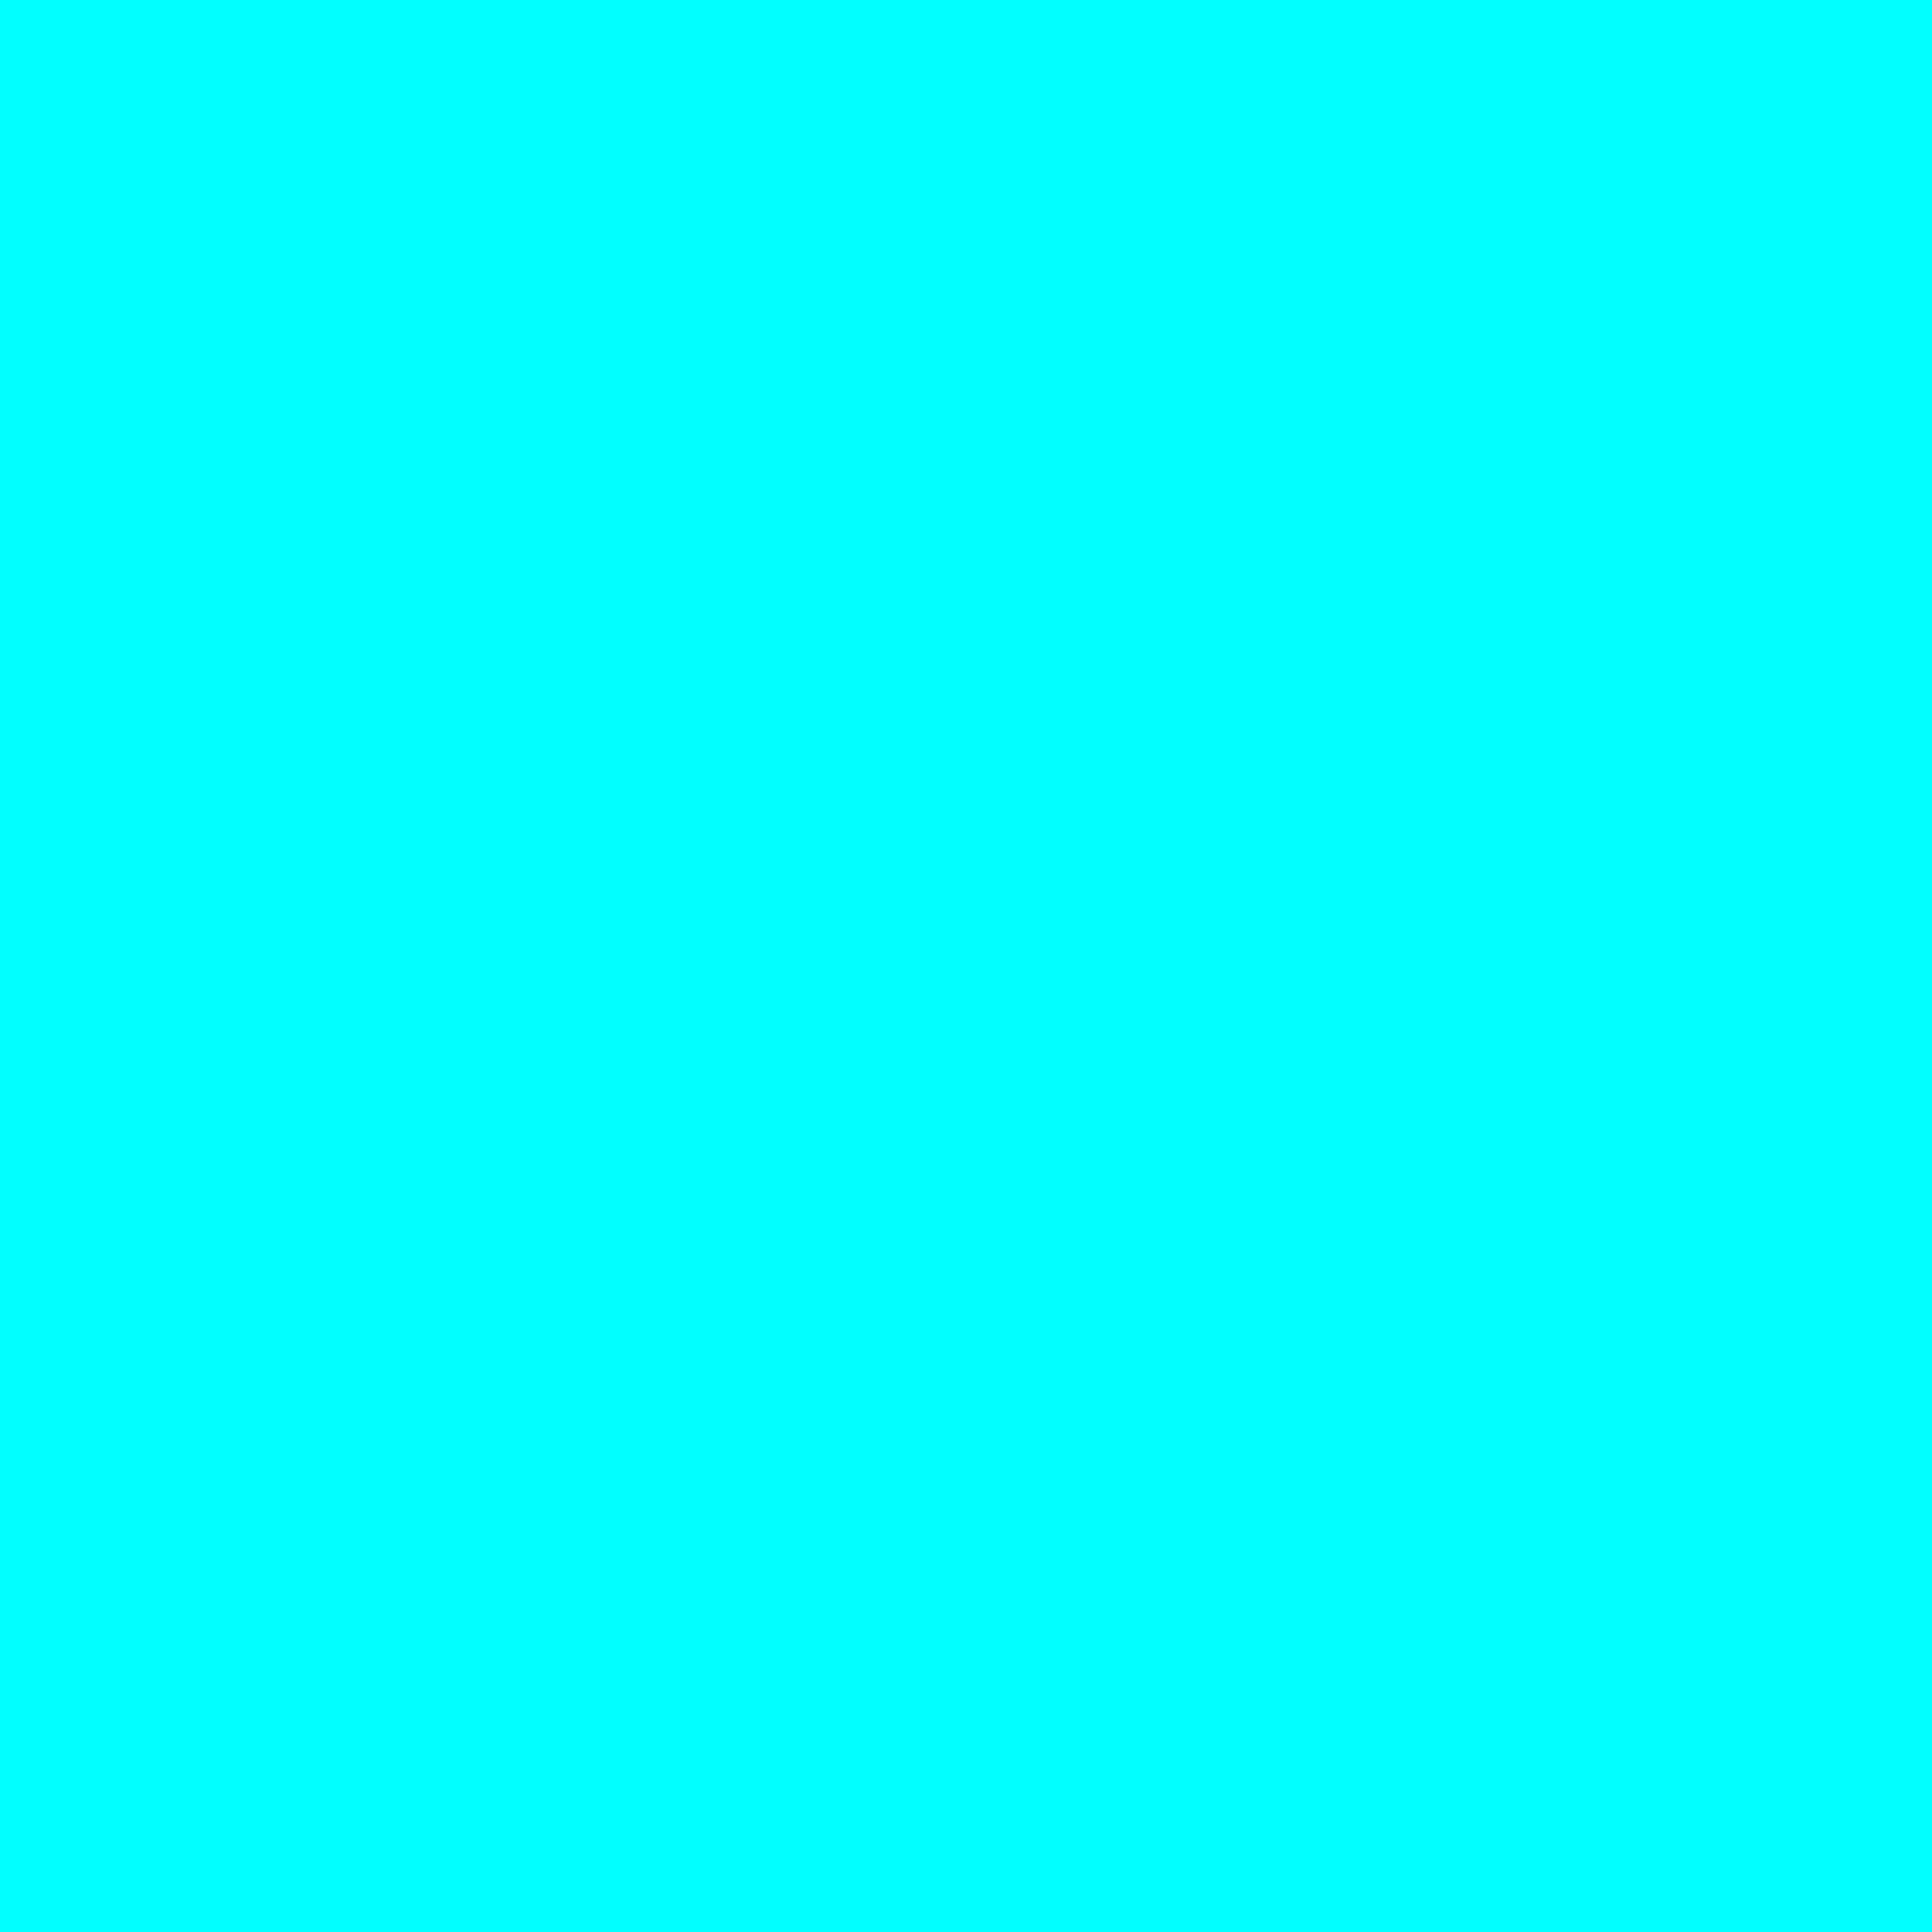 2048x2048 Electric Cyan Solid Color Background